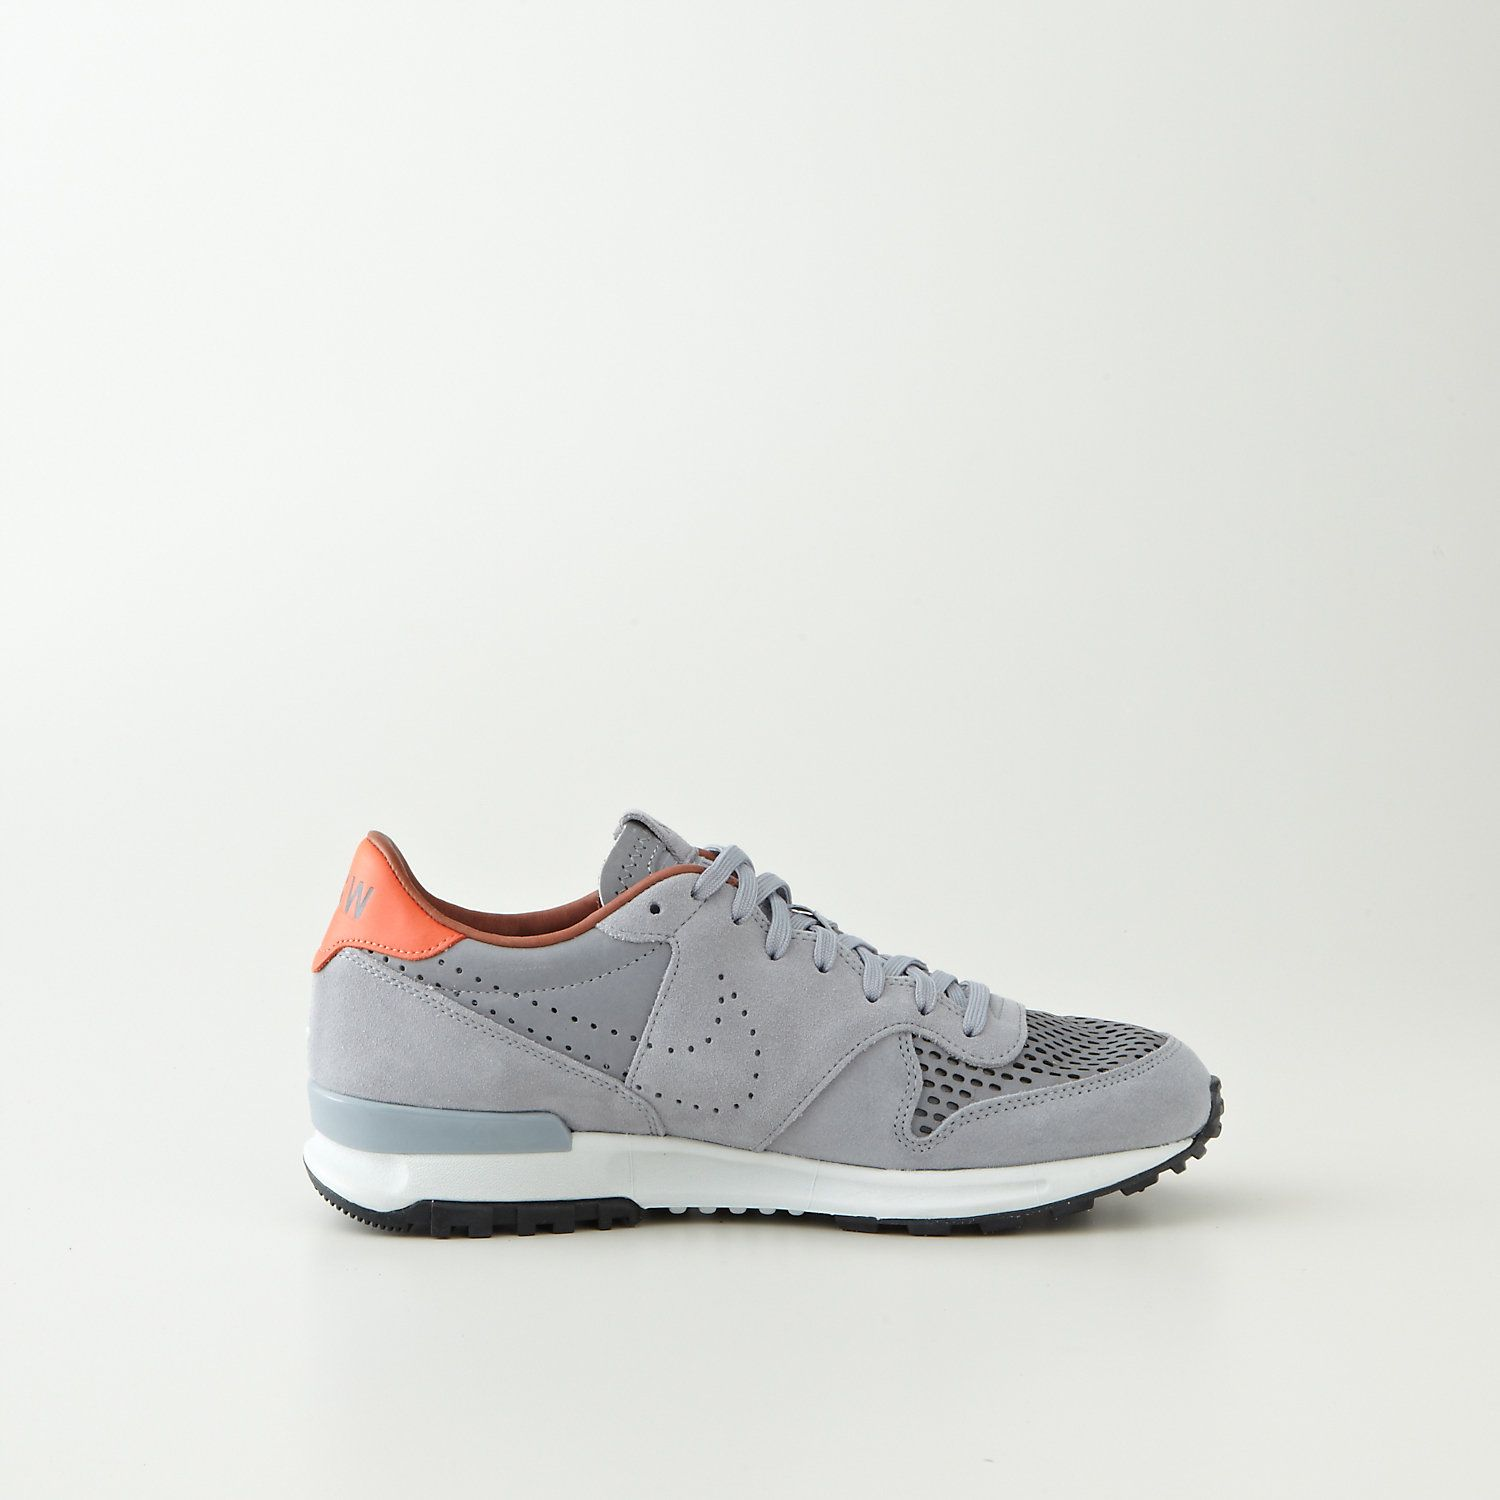 wholesale dealer bd047 a1faf Nike Air Solstice Premium NSW  Mens Shoes  Steven Alan Running Shoes Nike,  Nike